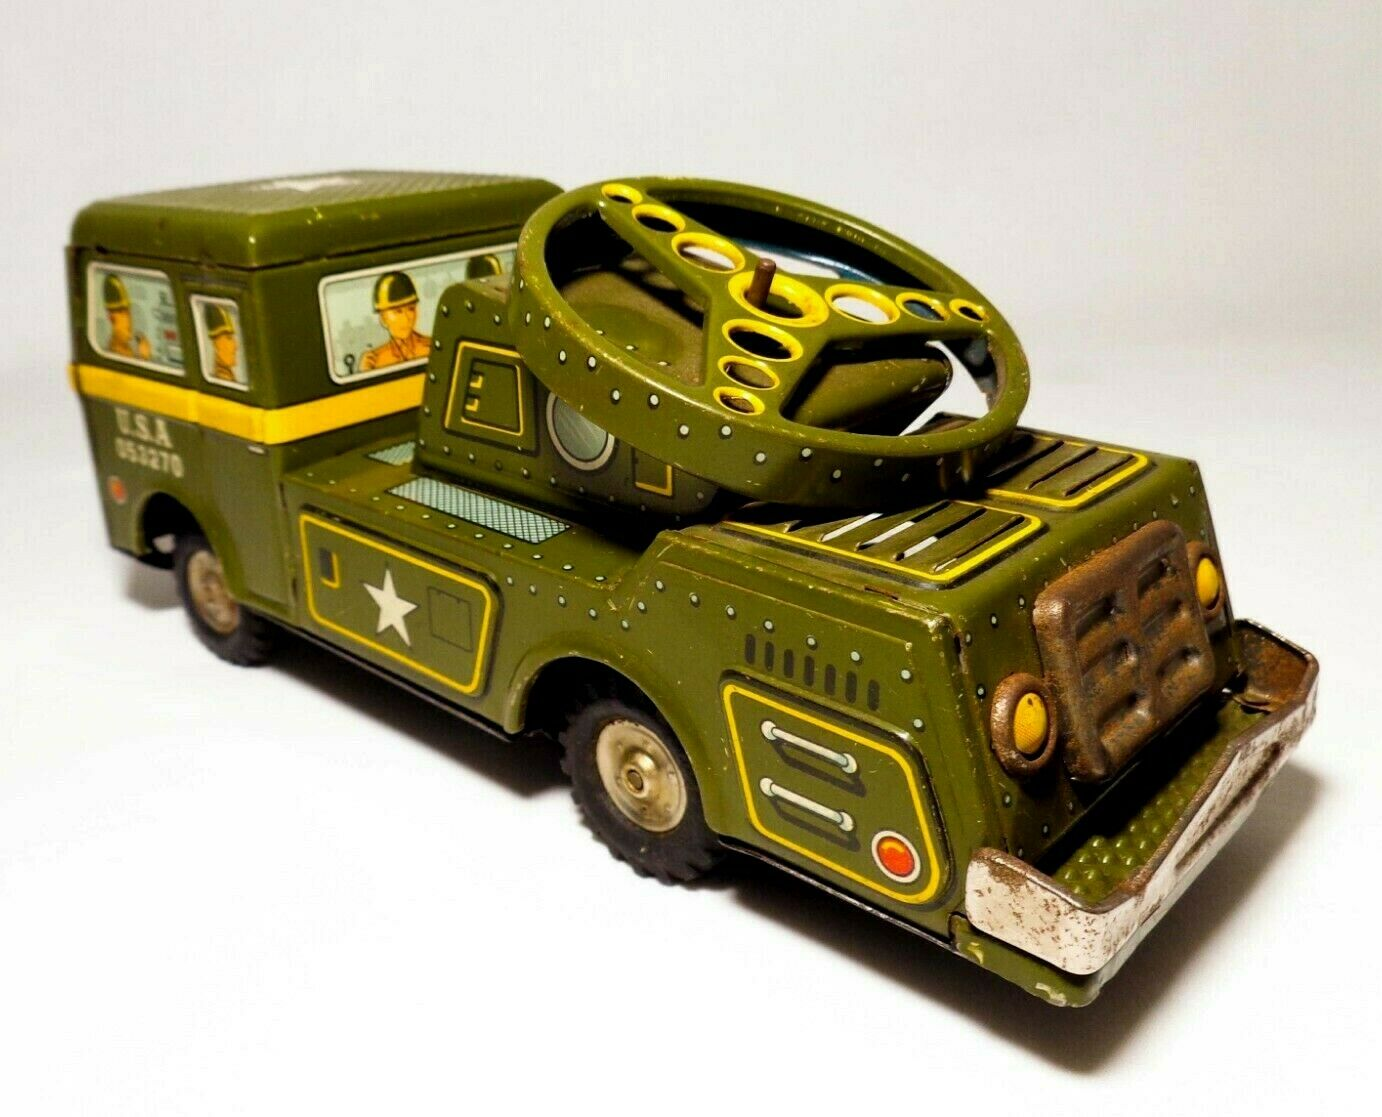 TN NOMURA (JAPAN) VINTAGE US ARMY PRESSED TIN LITHO FRICTION TOY MILITARY TRUCK